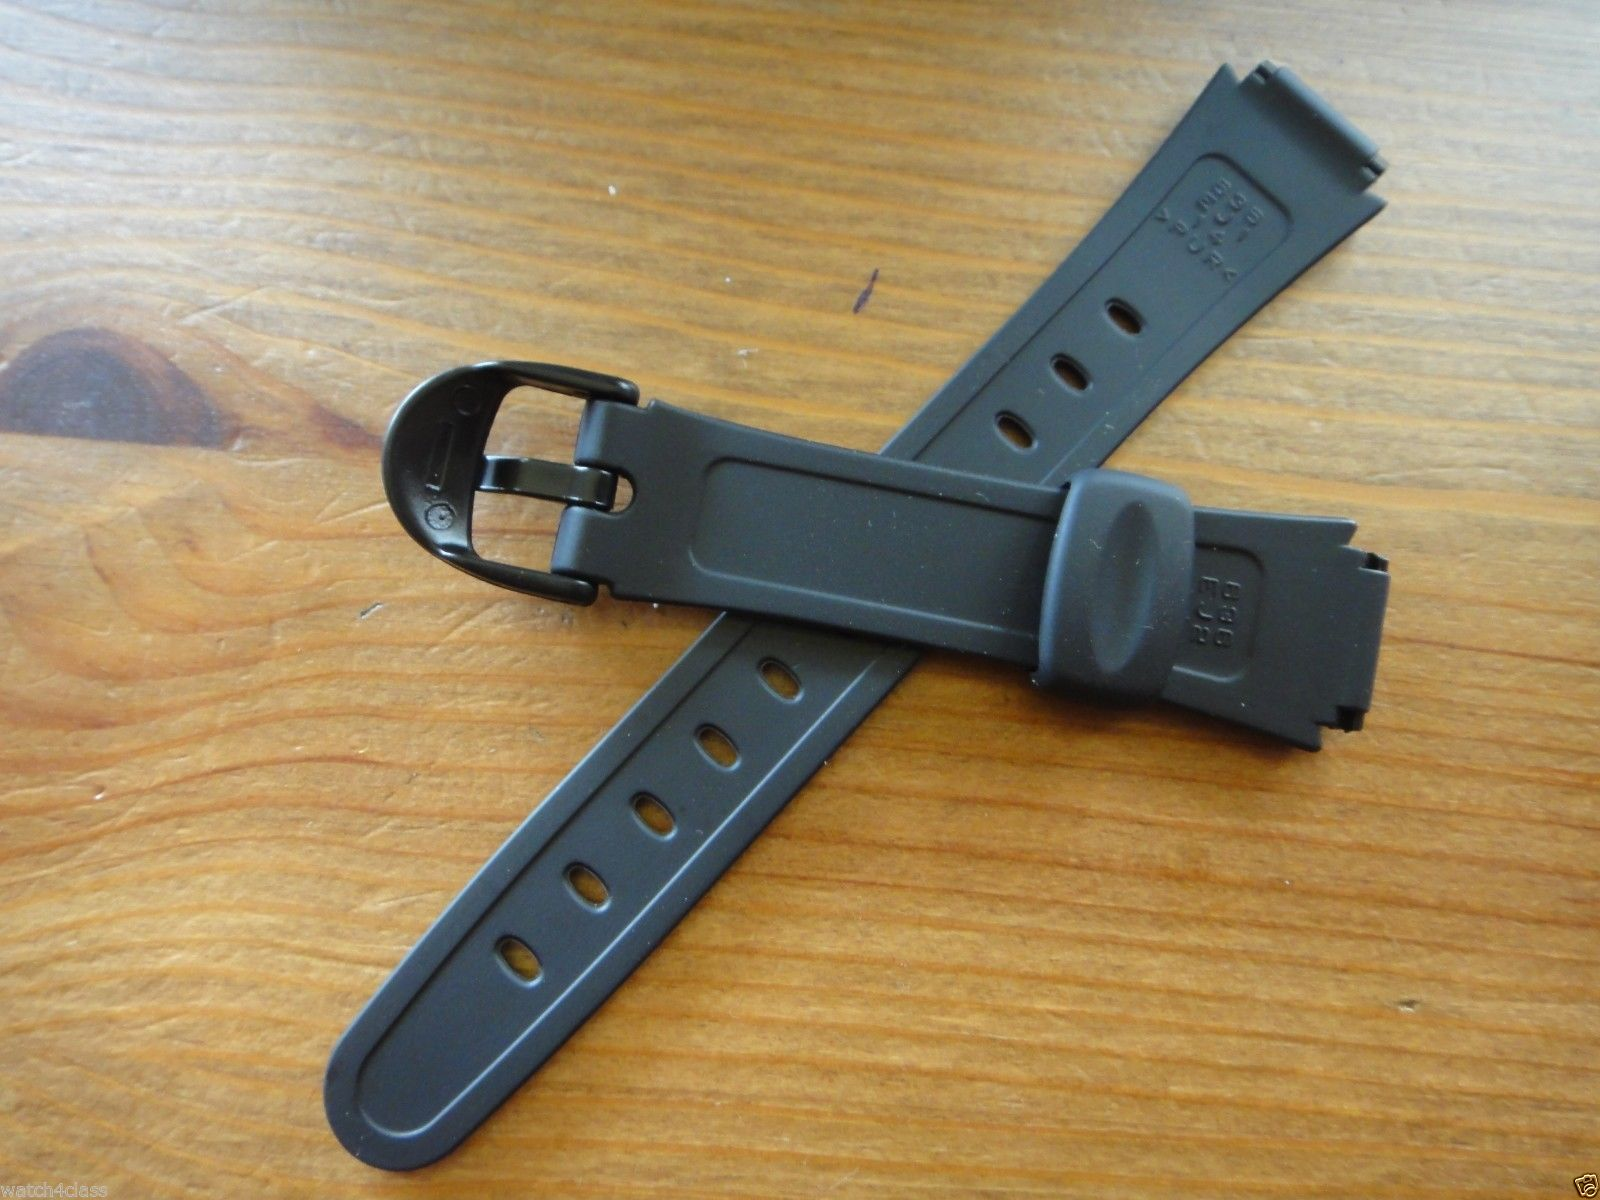 Genuine Replacement strap for Casio LW-200